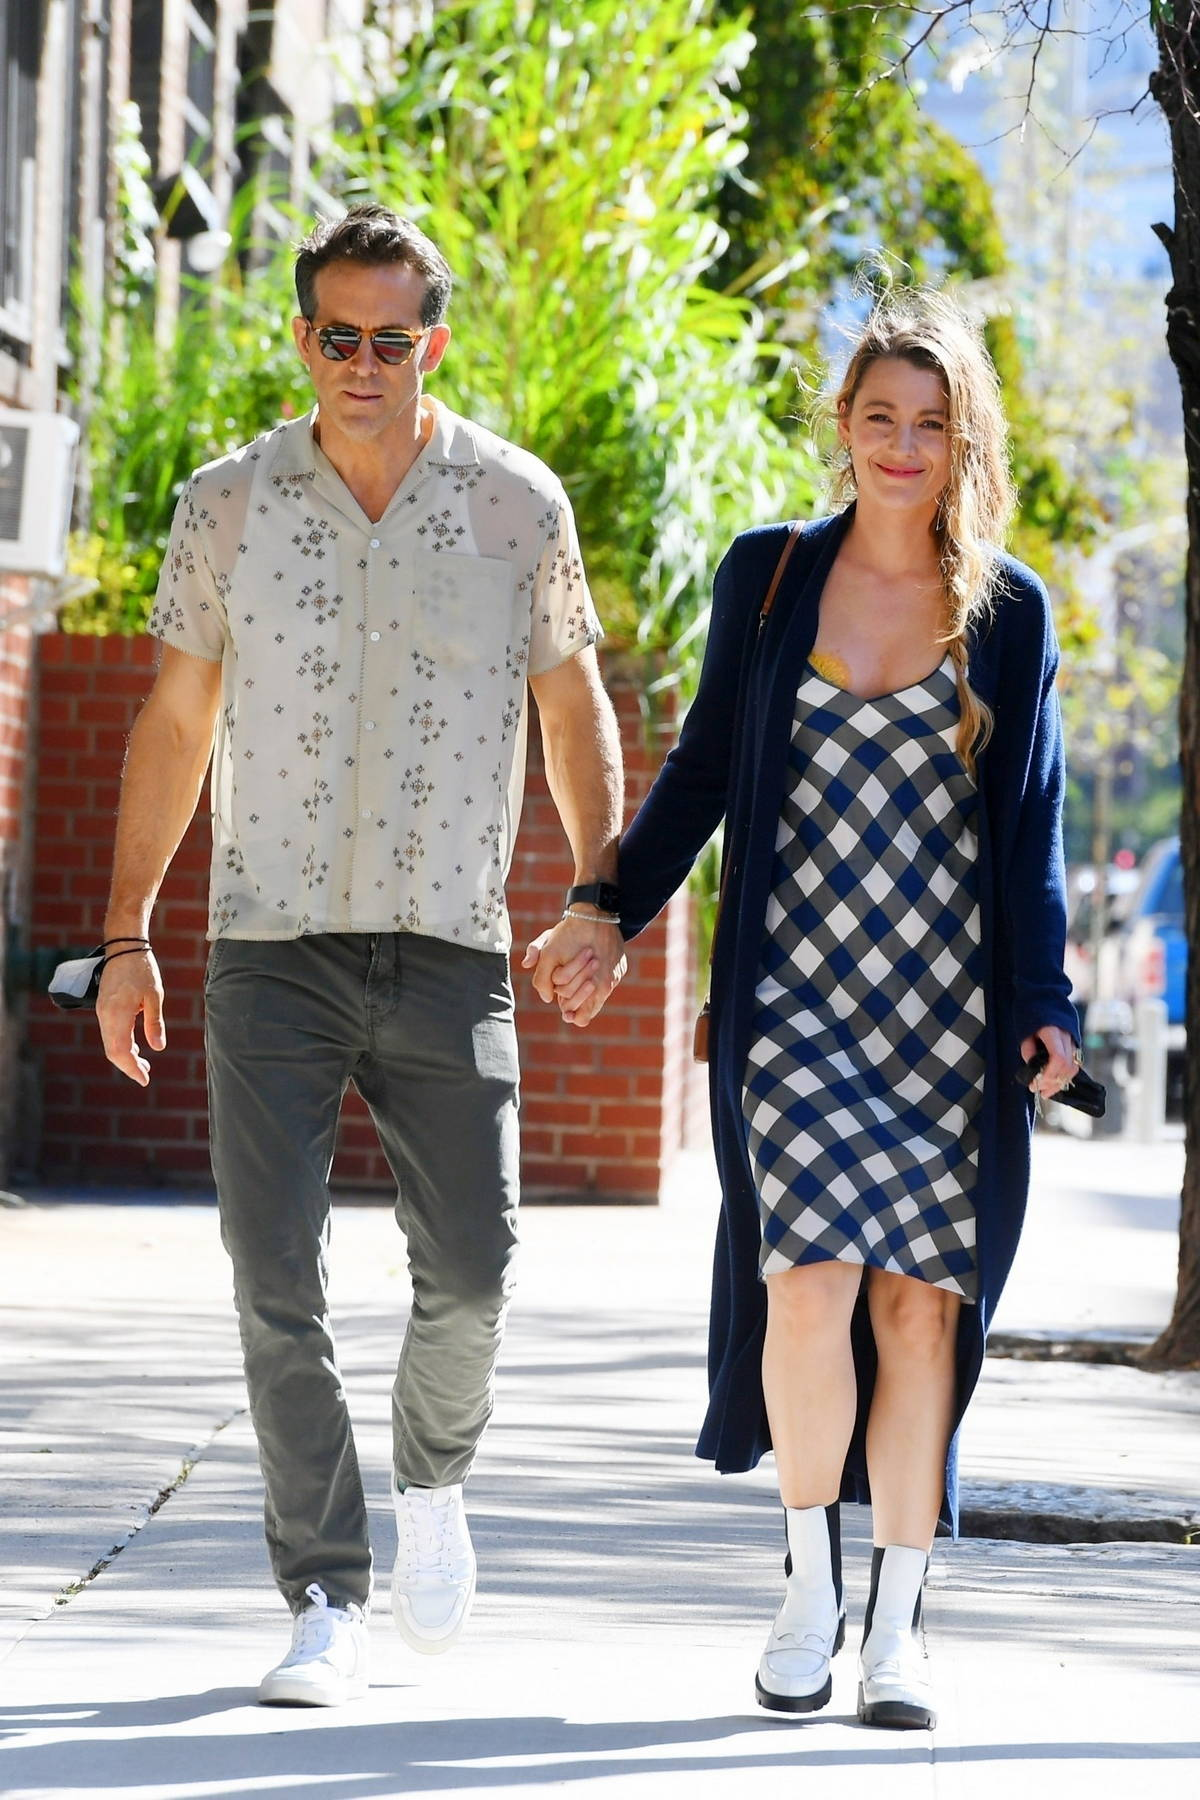 Blake Lively and Ryan Reynolds hold hands as they take a stroll through Tribeca in New York City